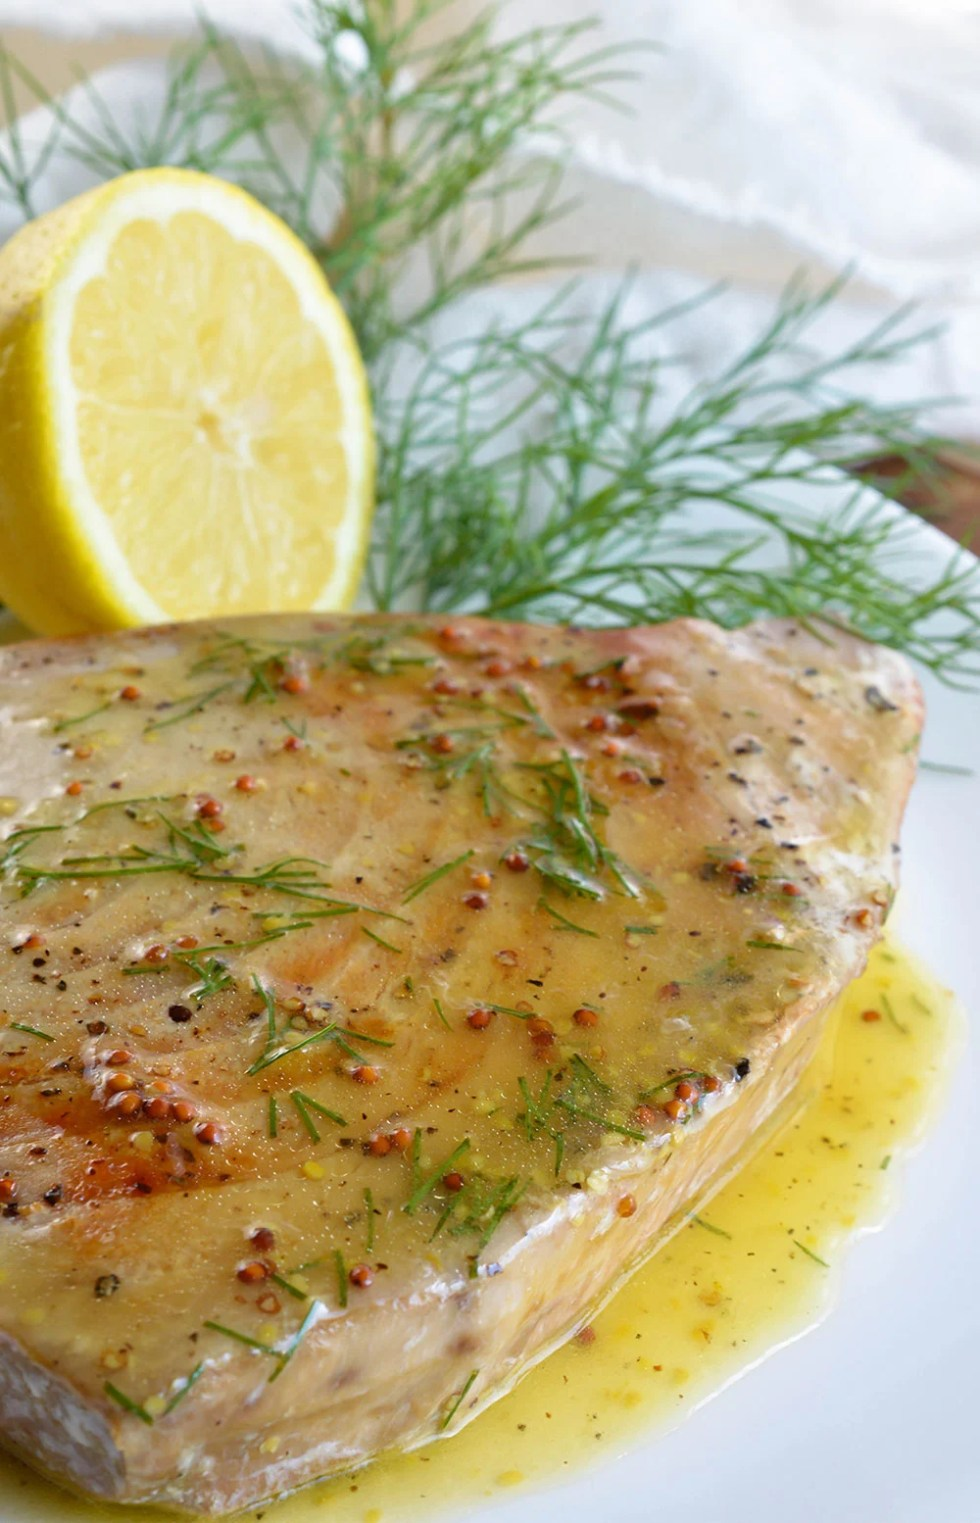 Pan Seared Tuna Steak with Lemon Dill Sauce makes a flavorful and healthy meal. This nutritious lunch or dinner is full of protein and ready in about 10 minutes!